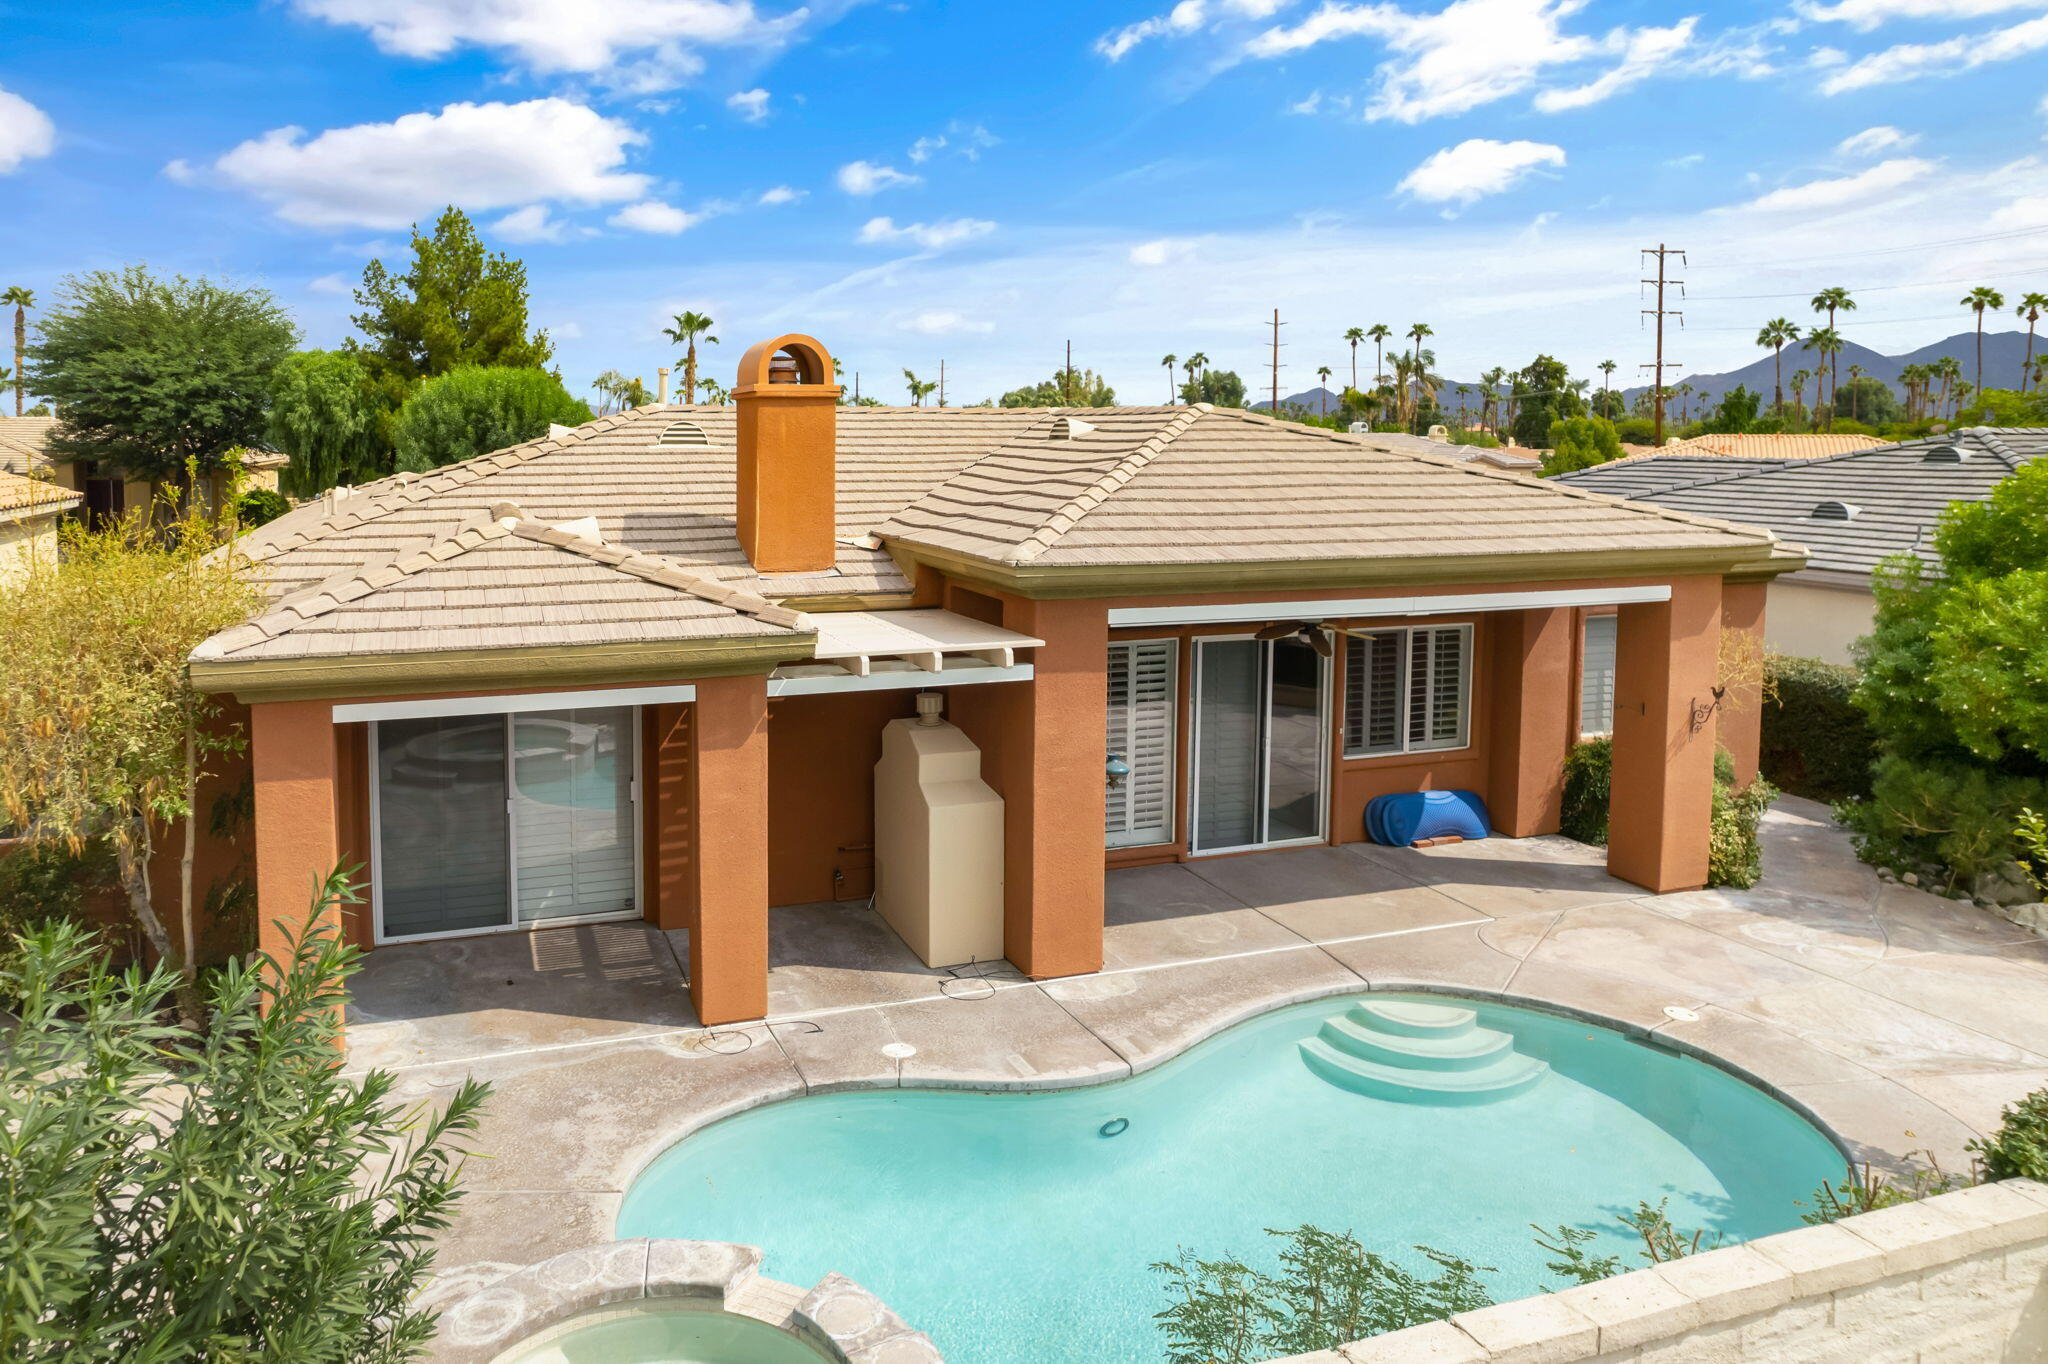 Treat yourself to easy-care living in this stunning Palm Desert home that captures sweeping views of the mountains. A grand glass entry welcomes you inside to discover high ceilings soaring overhead as tile flooring cascades underfoot, highlighted by recessed lighting throughout. Natural light fills the interior through multiple windows and glass doors adorned with plantation shutters. Show off your cooking skills in the bright, open kitchen featuring a double oven, a walk-in pantry, and a bar, plus the adjoining family room with a fireplace offers an ideal spot to gather. Discover stylish ceiling fans in the private retreats, along with custom-built cabinetry for ample storage. Explore everything your outdoor oasis has to offer, including a pool plus spa, three fireplaces, a covered patio with breathtaking views, a private courtyard, and a koi pond. Take advantage of additional noteworthy features such as Casita, attached 3-car garage with extra storage, a laundry room equipped with a washer/dryer, plus this inviting home comes wired for security. Ready to live the comfortable lifestyle you deserve? Come for a tour while you still can!